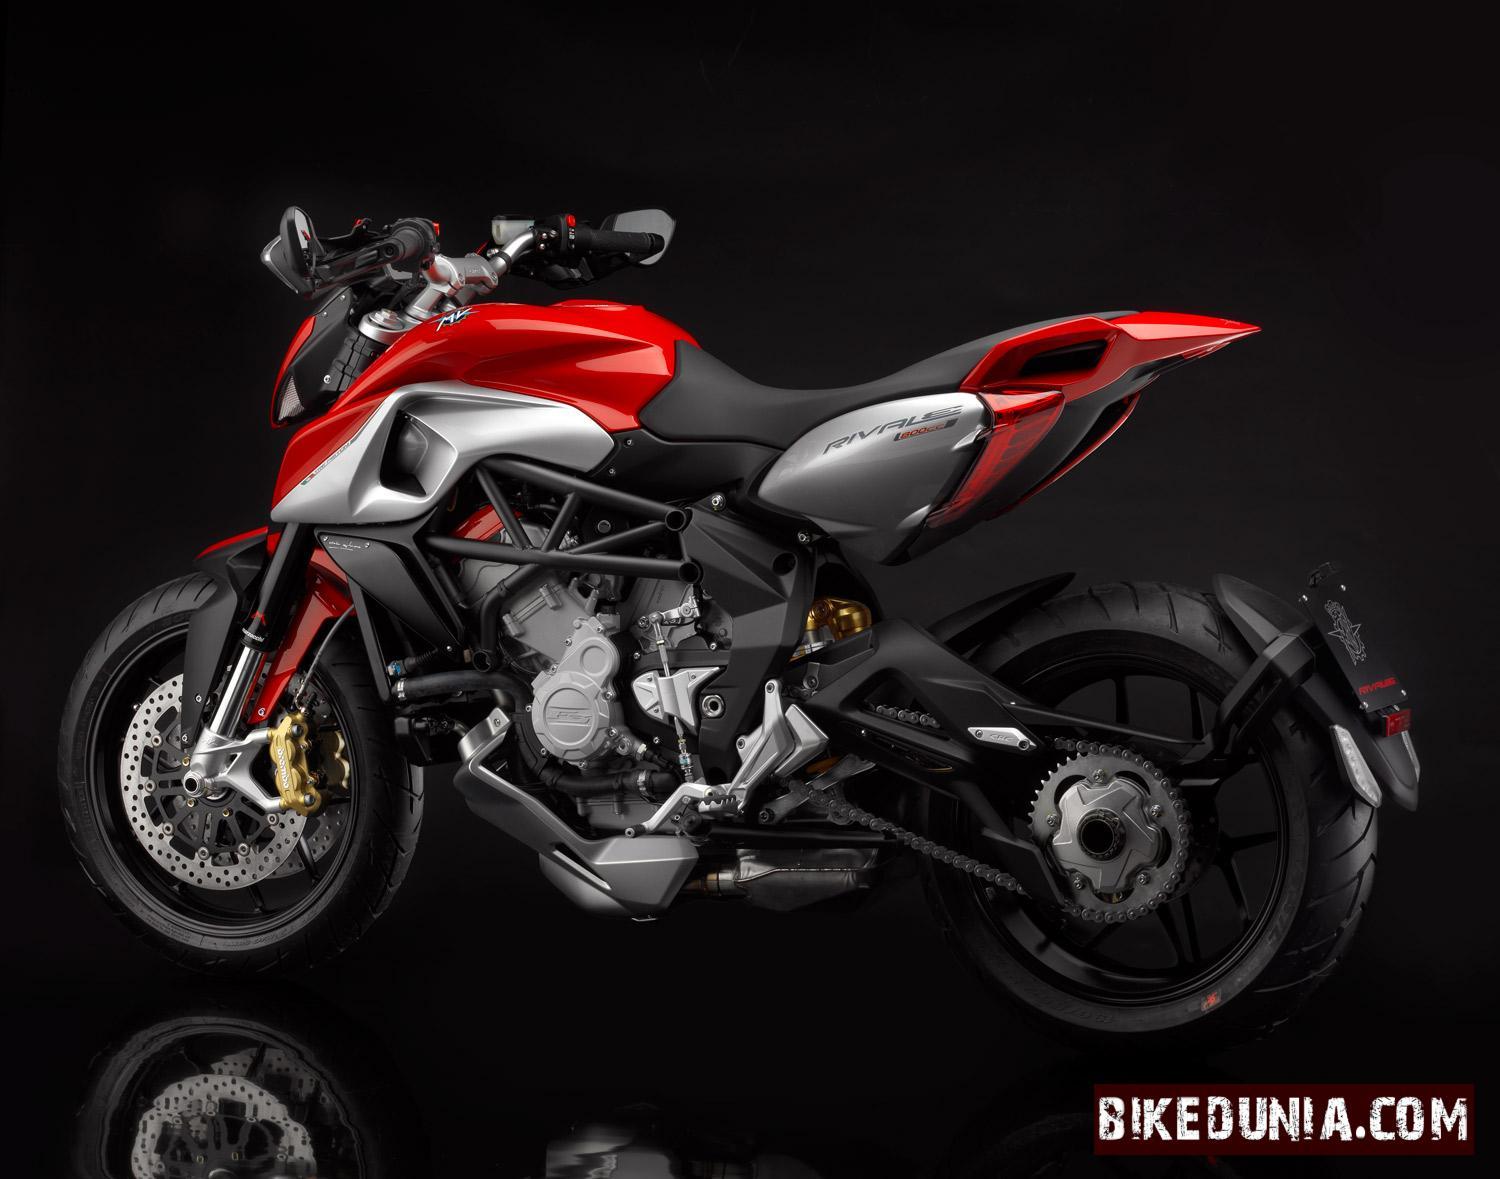 The italian motorcycle manufacturer mv agusta motor s p a confirmed